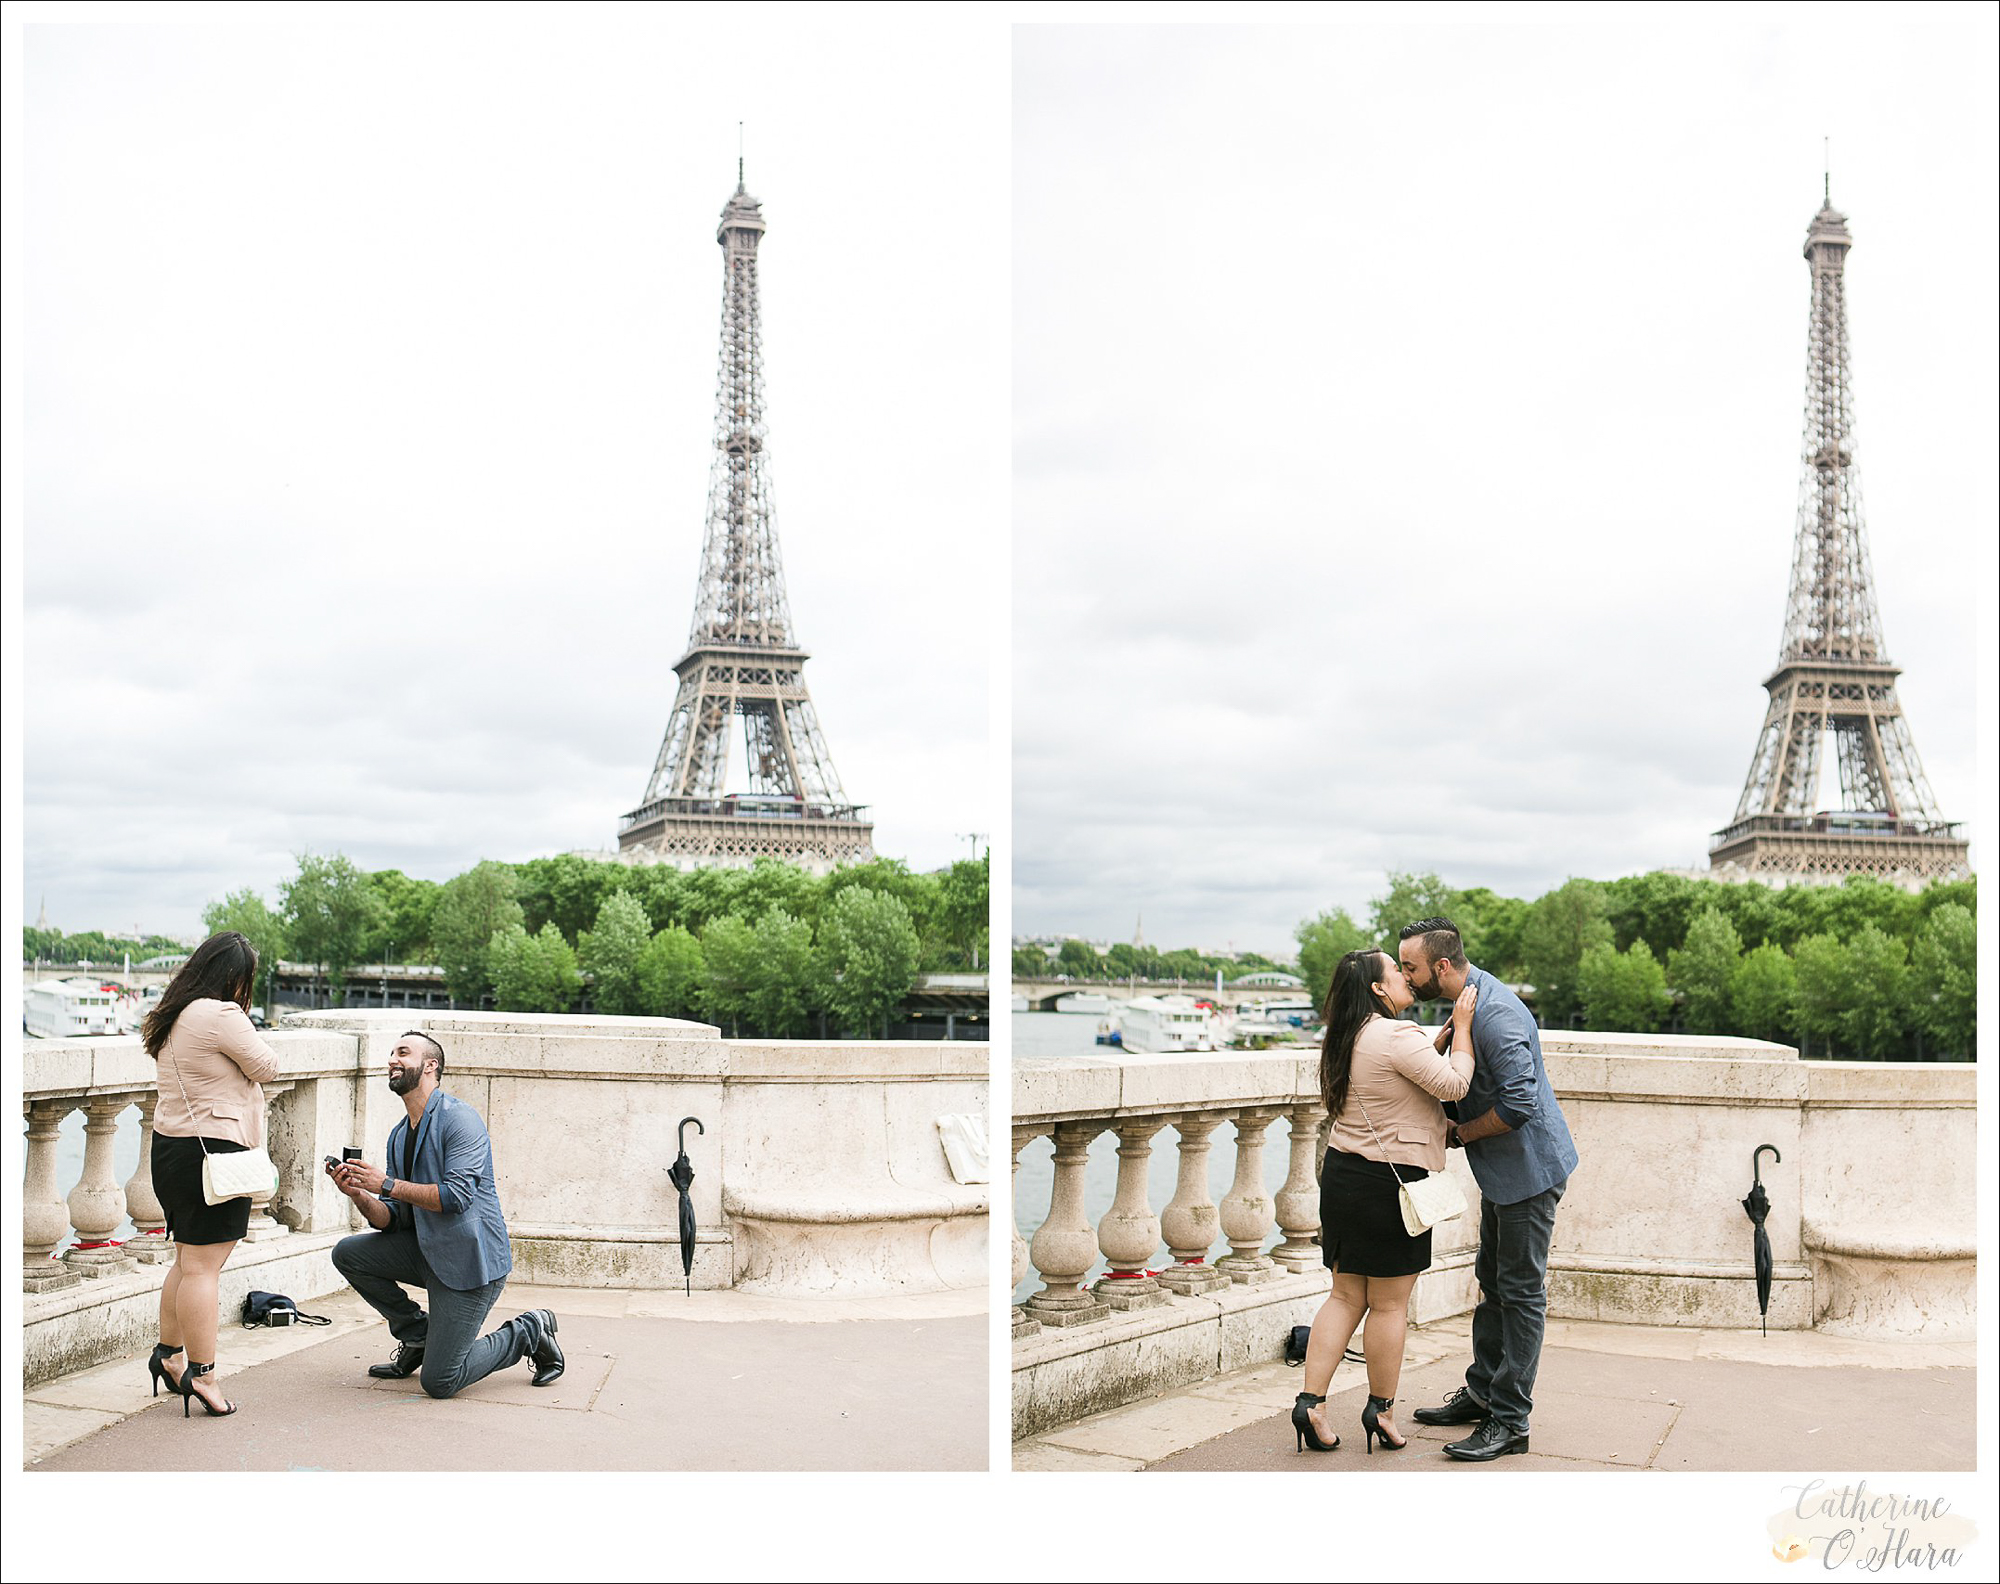 surprise proposal engagement photographer paris france-07.jpg